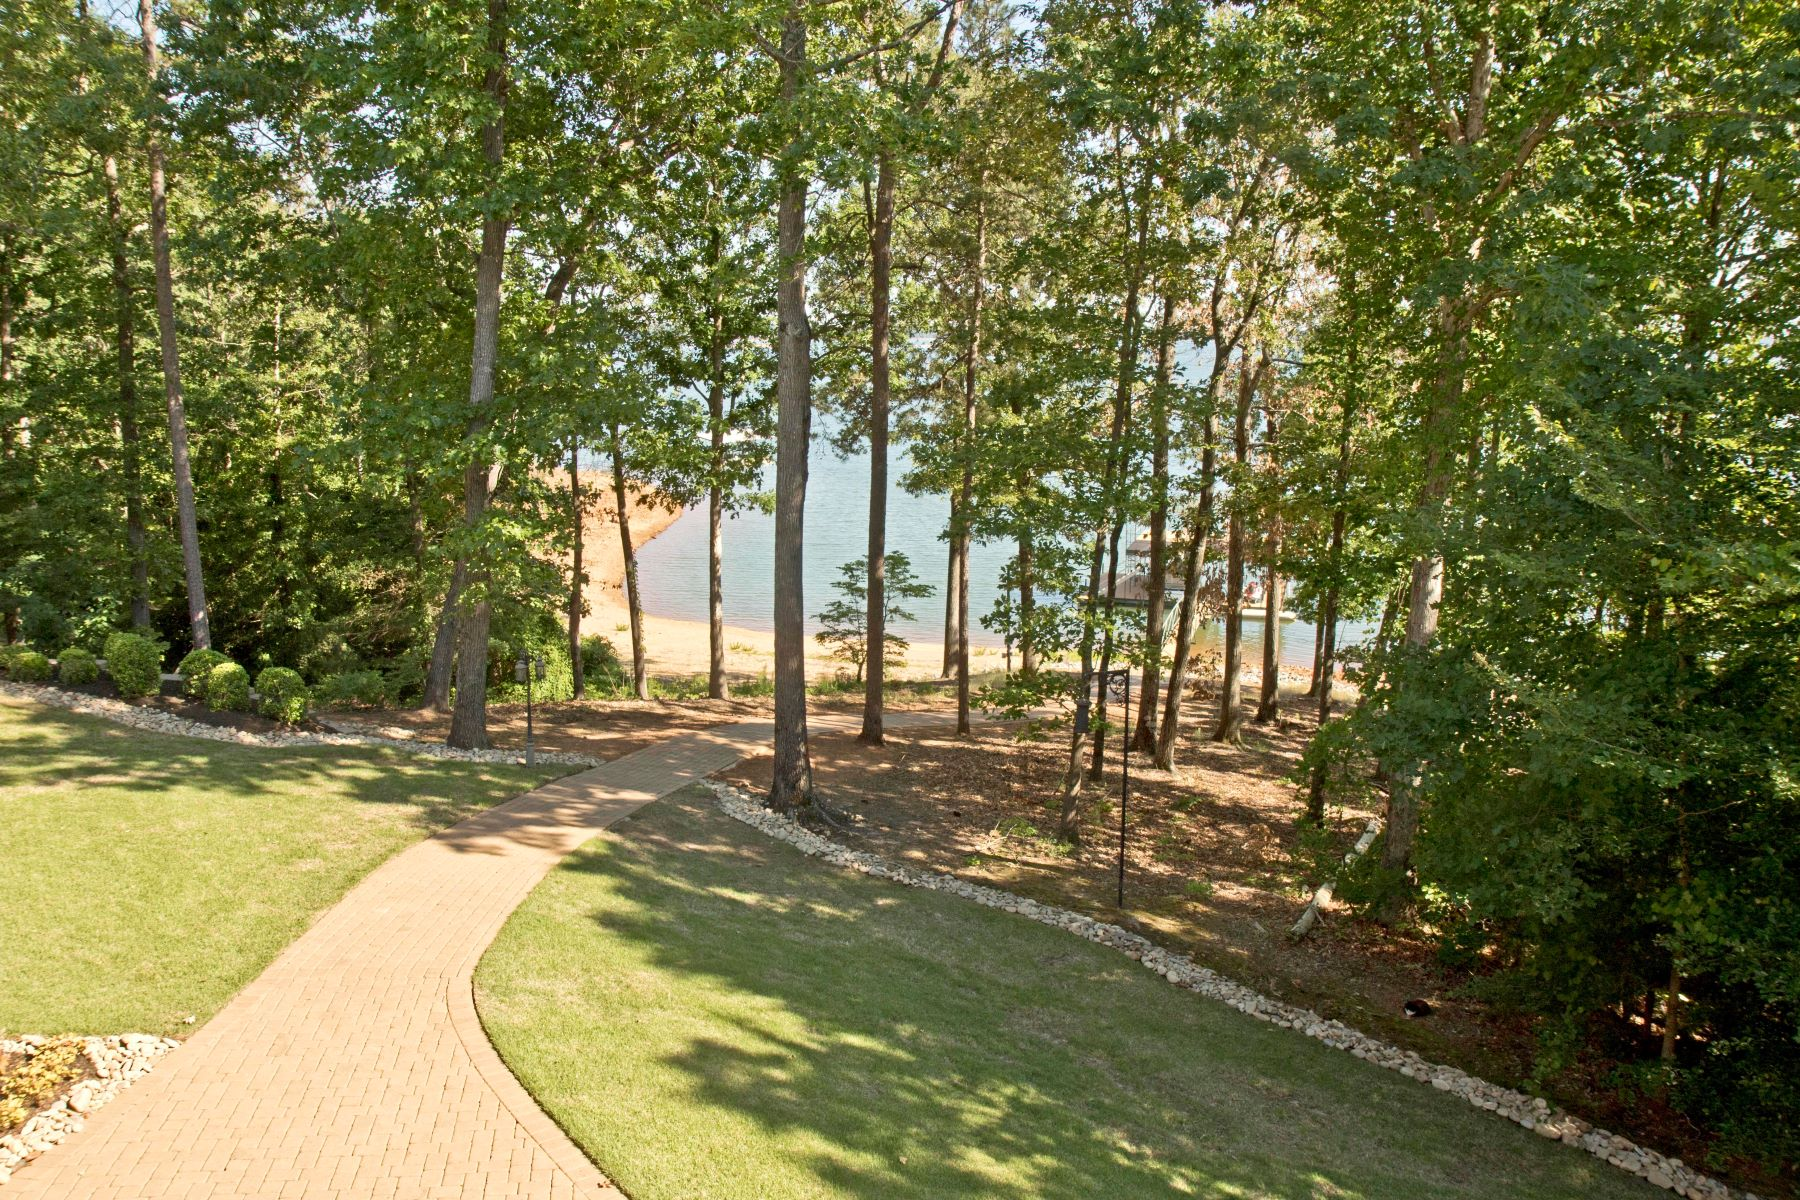 Additional photo for property listing at 114 Keowee Club Road 114 Keowee Club Road Townville, South Carolina 29689 United States